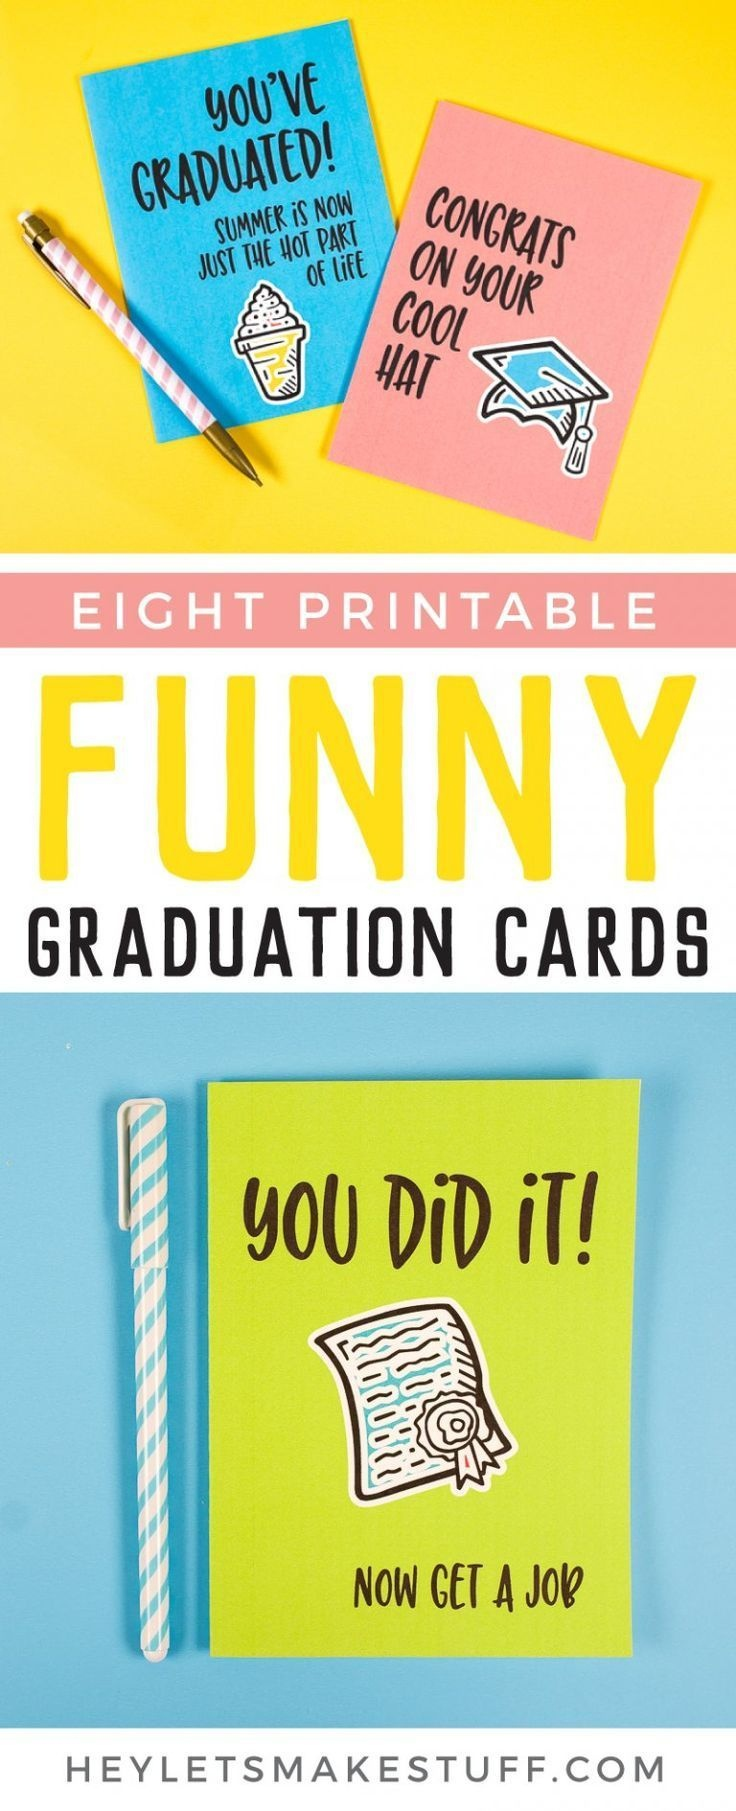 Printable Funny Graduation Cards | Freebies-Printables And Downloads - Graduation Cards Free Printable Funny